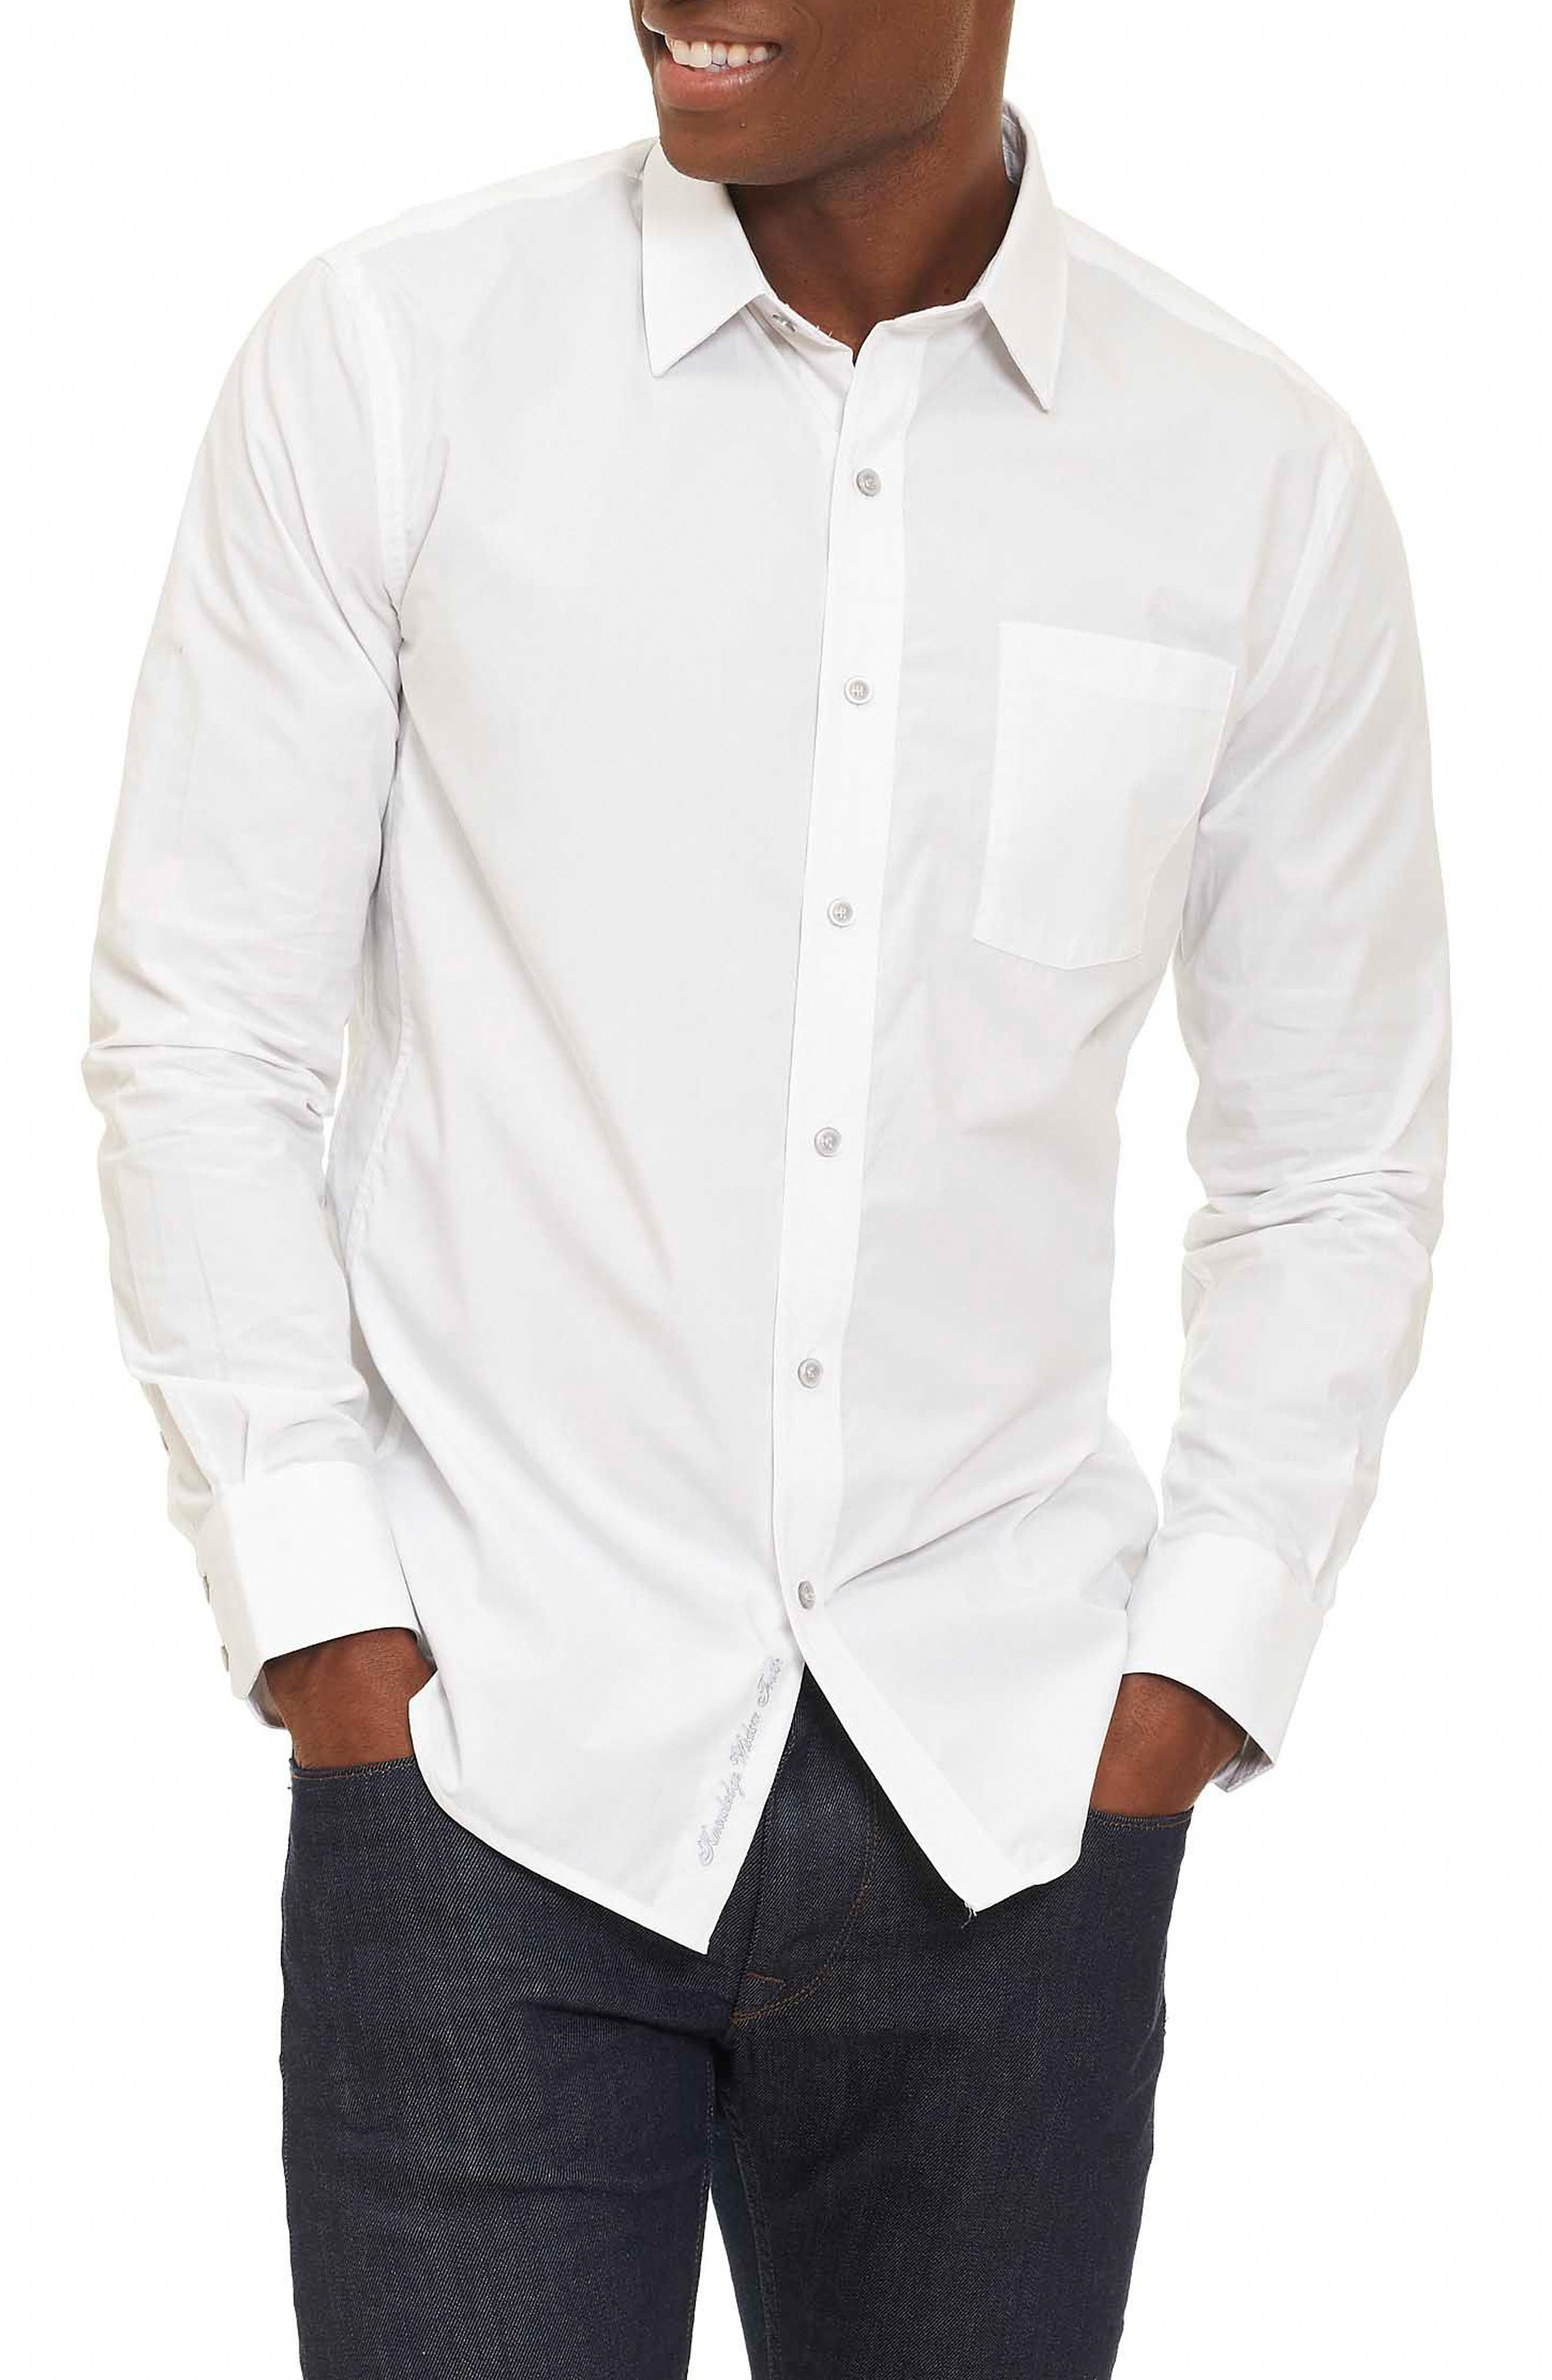 Groves Tailored Fit Sport Shirt,                             Main thumbnail 1, color,                             100